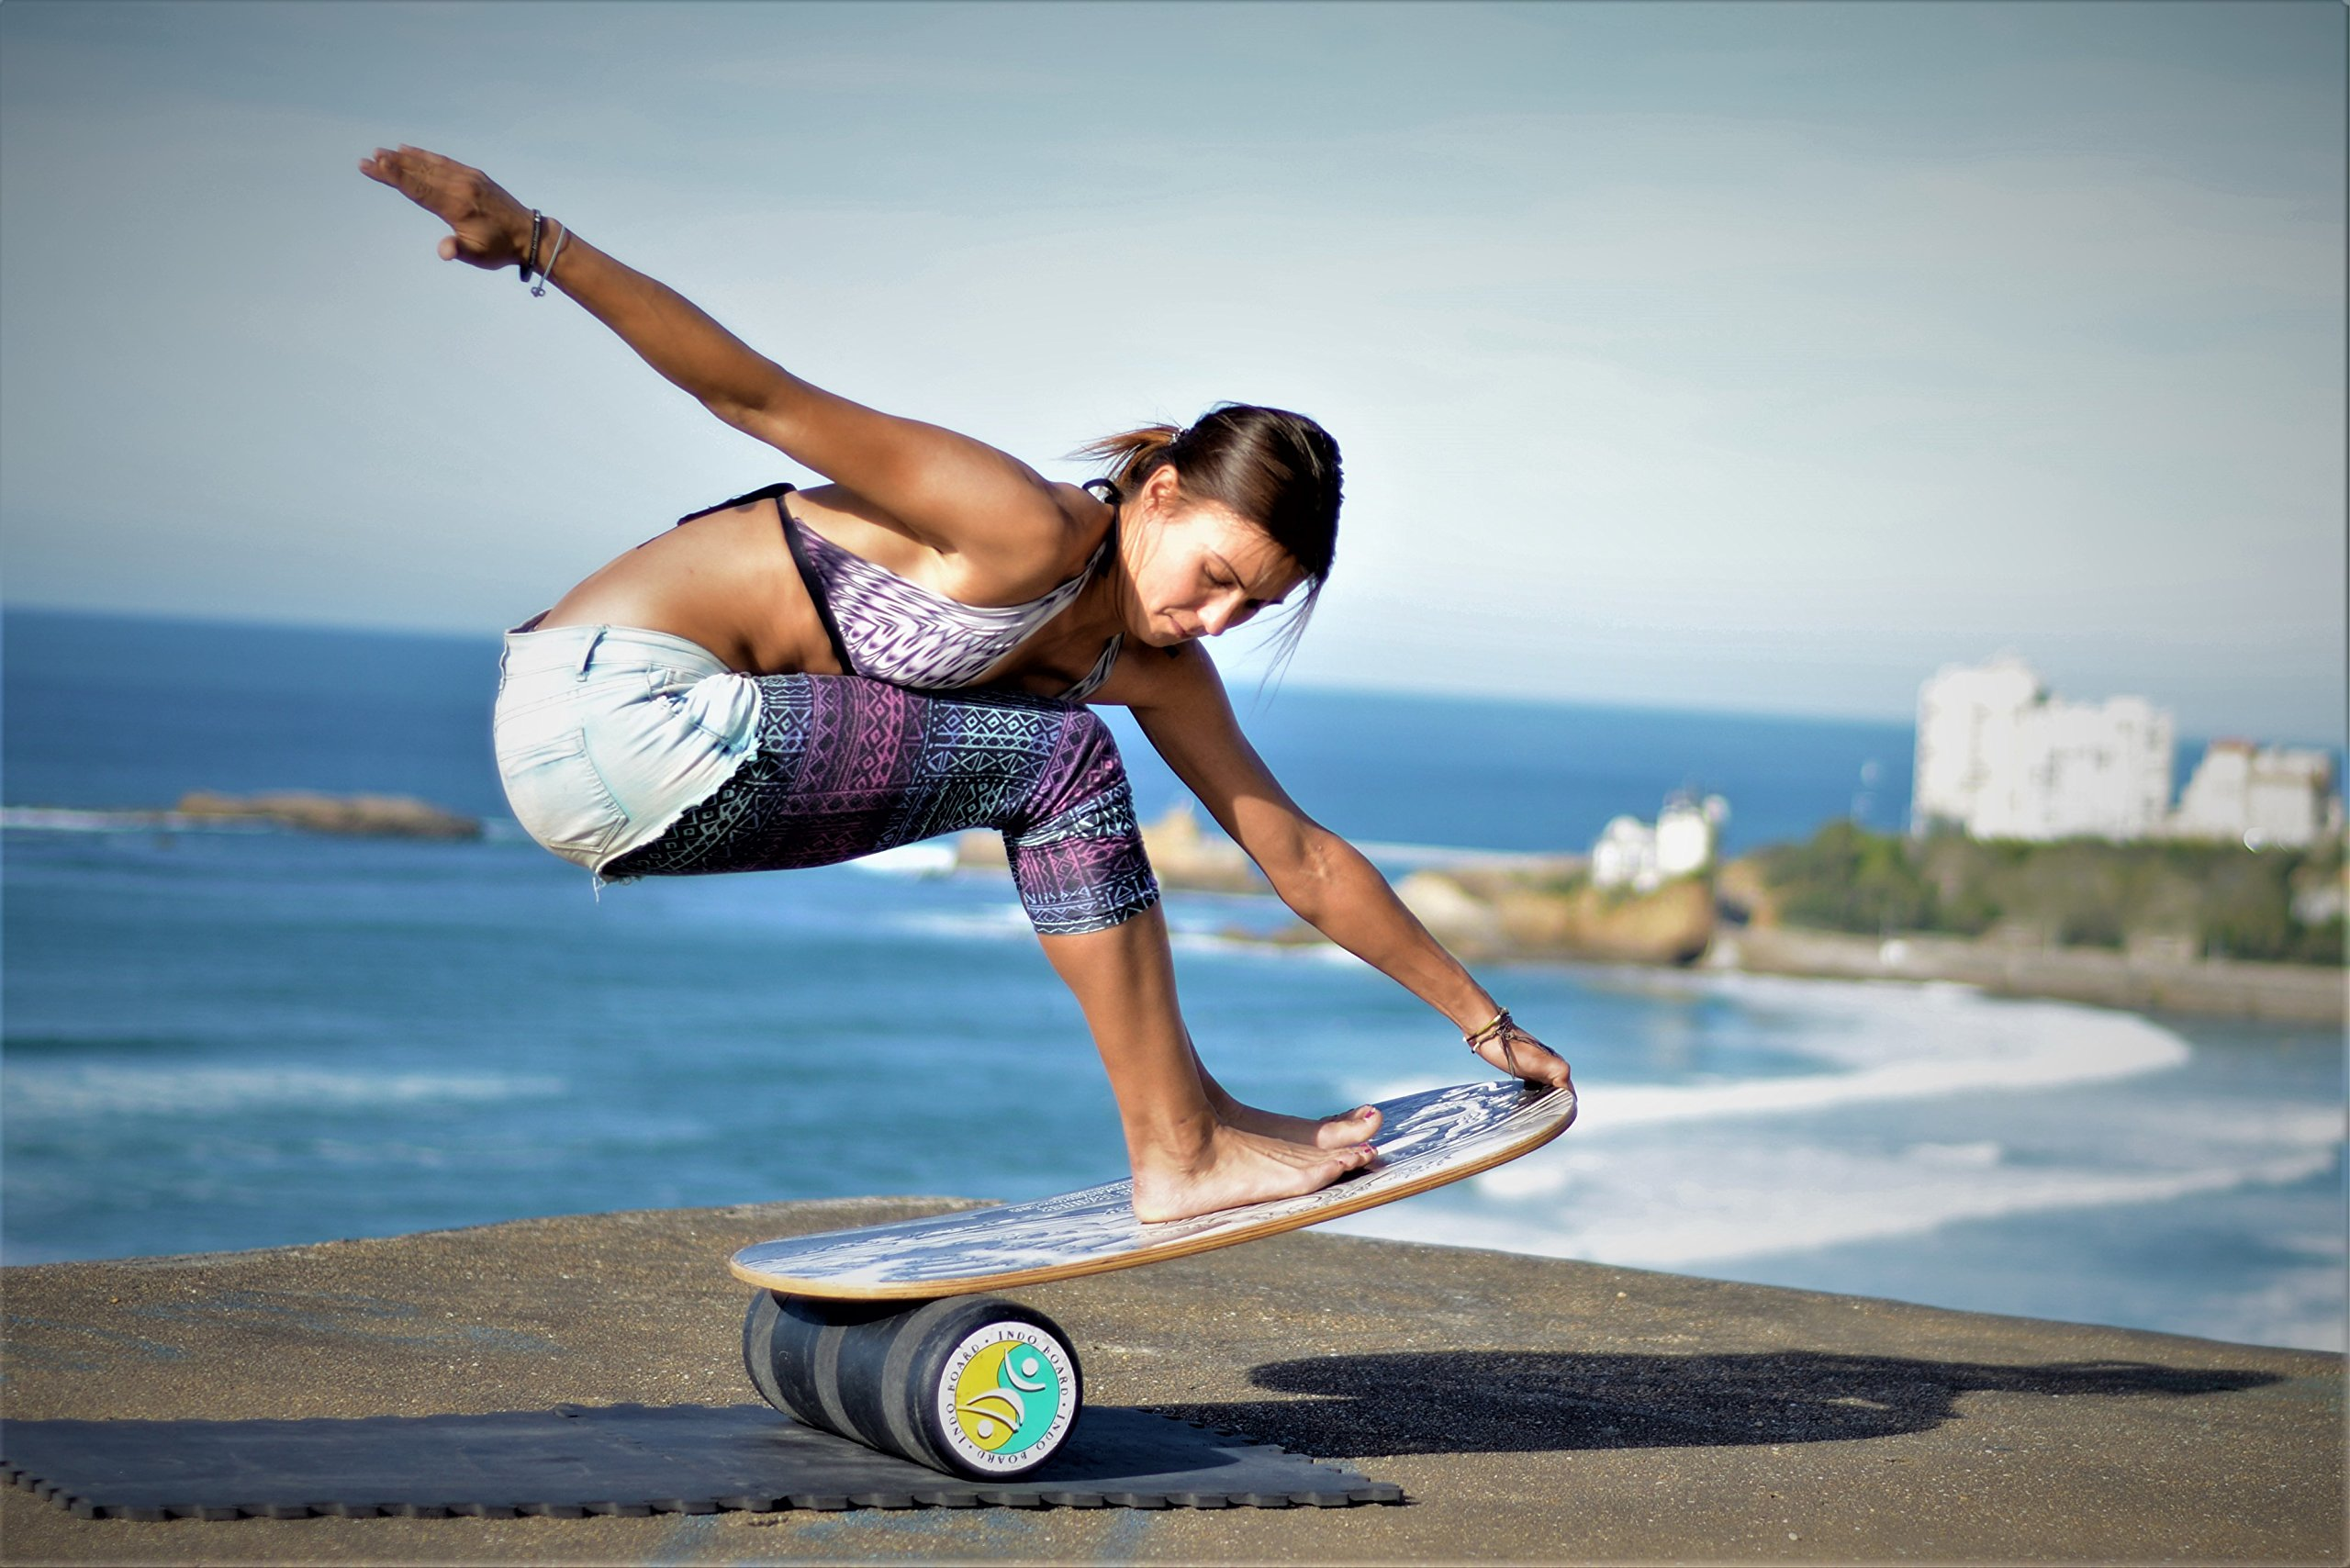 INDO BOARD Rocker 33'' X 16'' with 6.5'' Roller - High Performance Balance Board for Advanced Tricks - Mahogany Brown by INDO BOARD (Image #4)